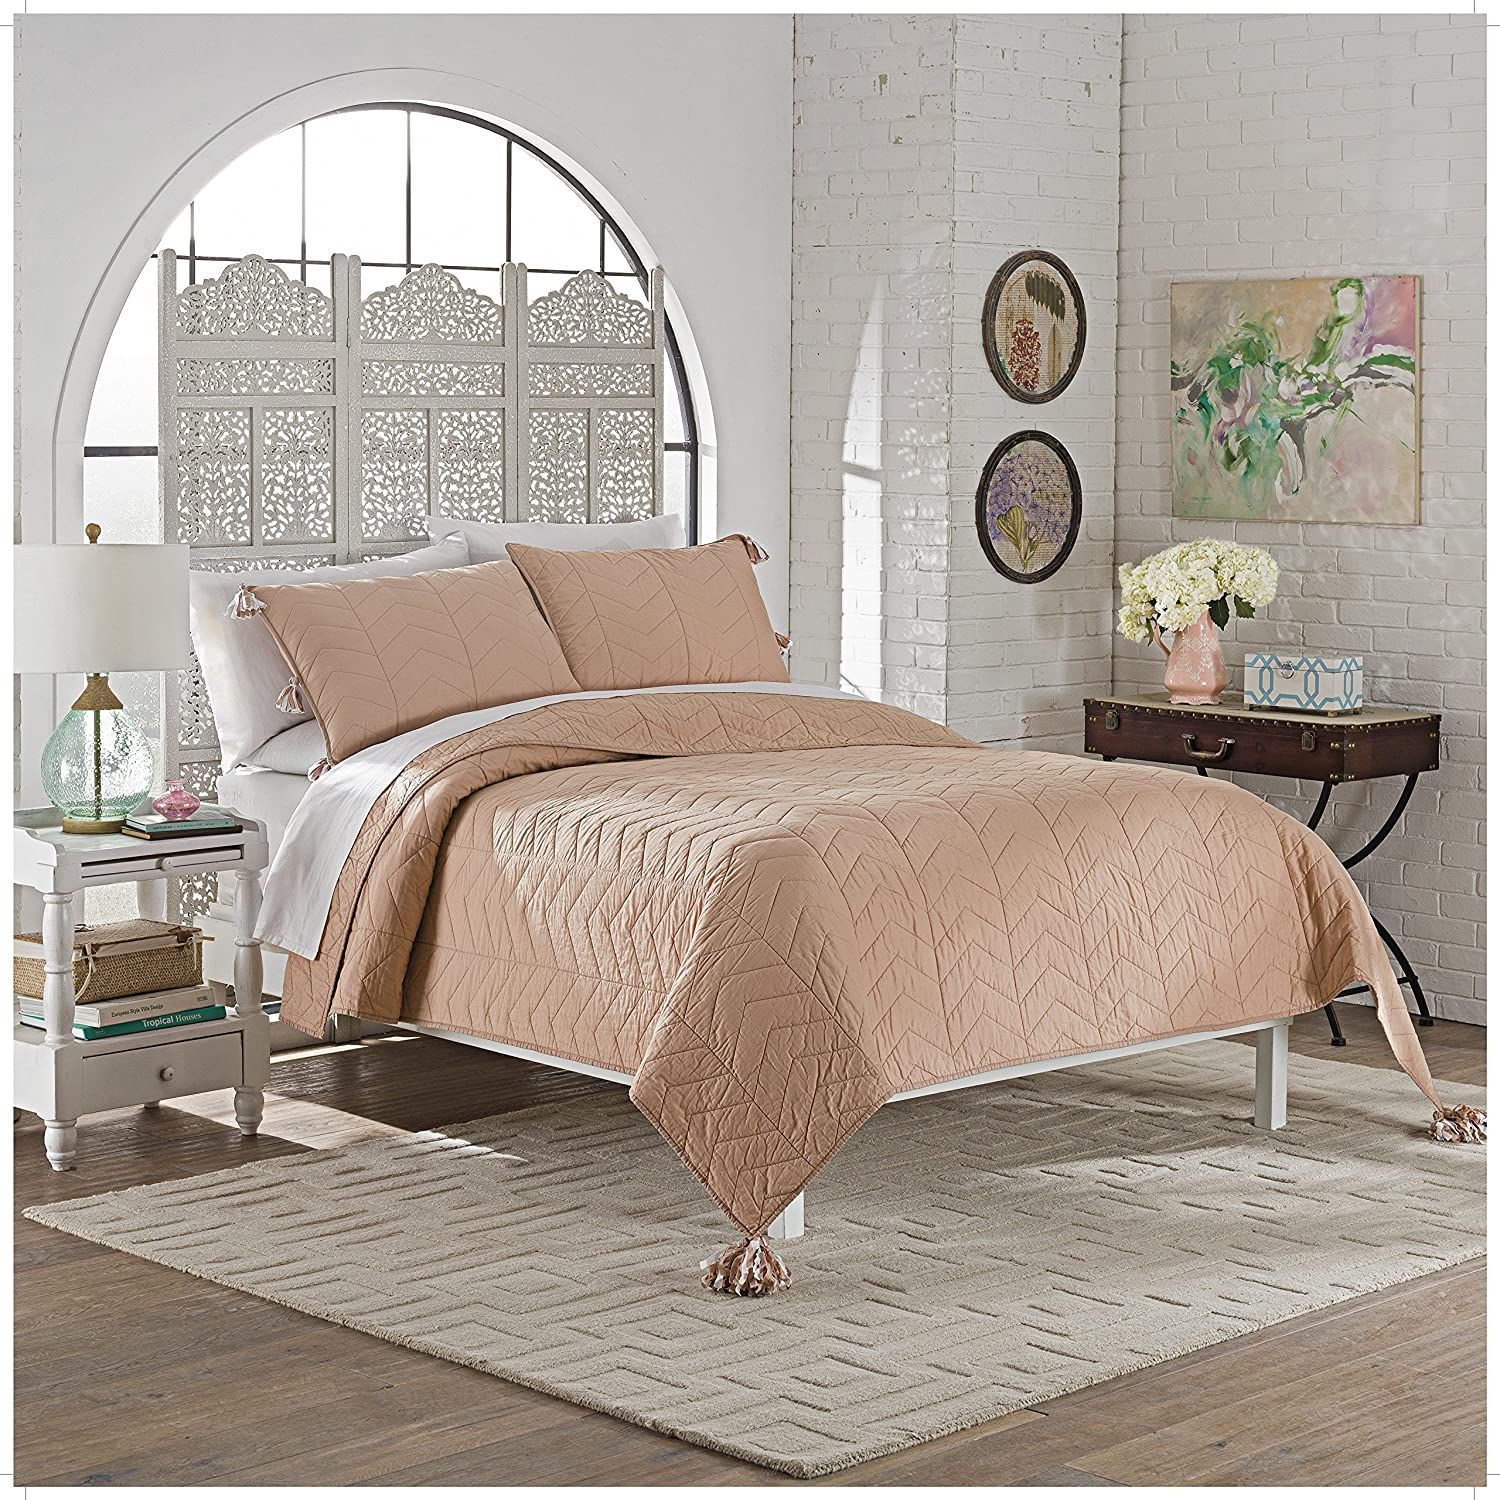 Marble Hill Nadia 3Piece Quilt Set,Dusty Rose,King